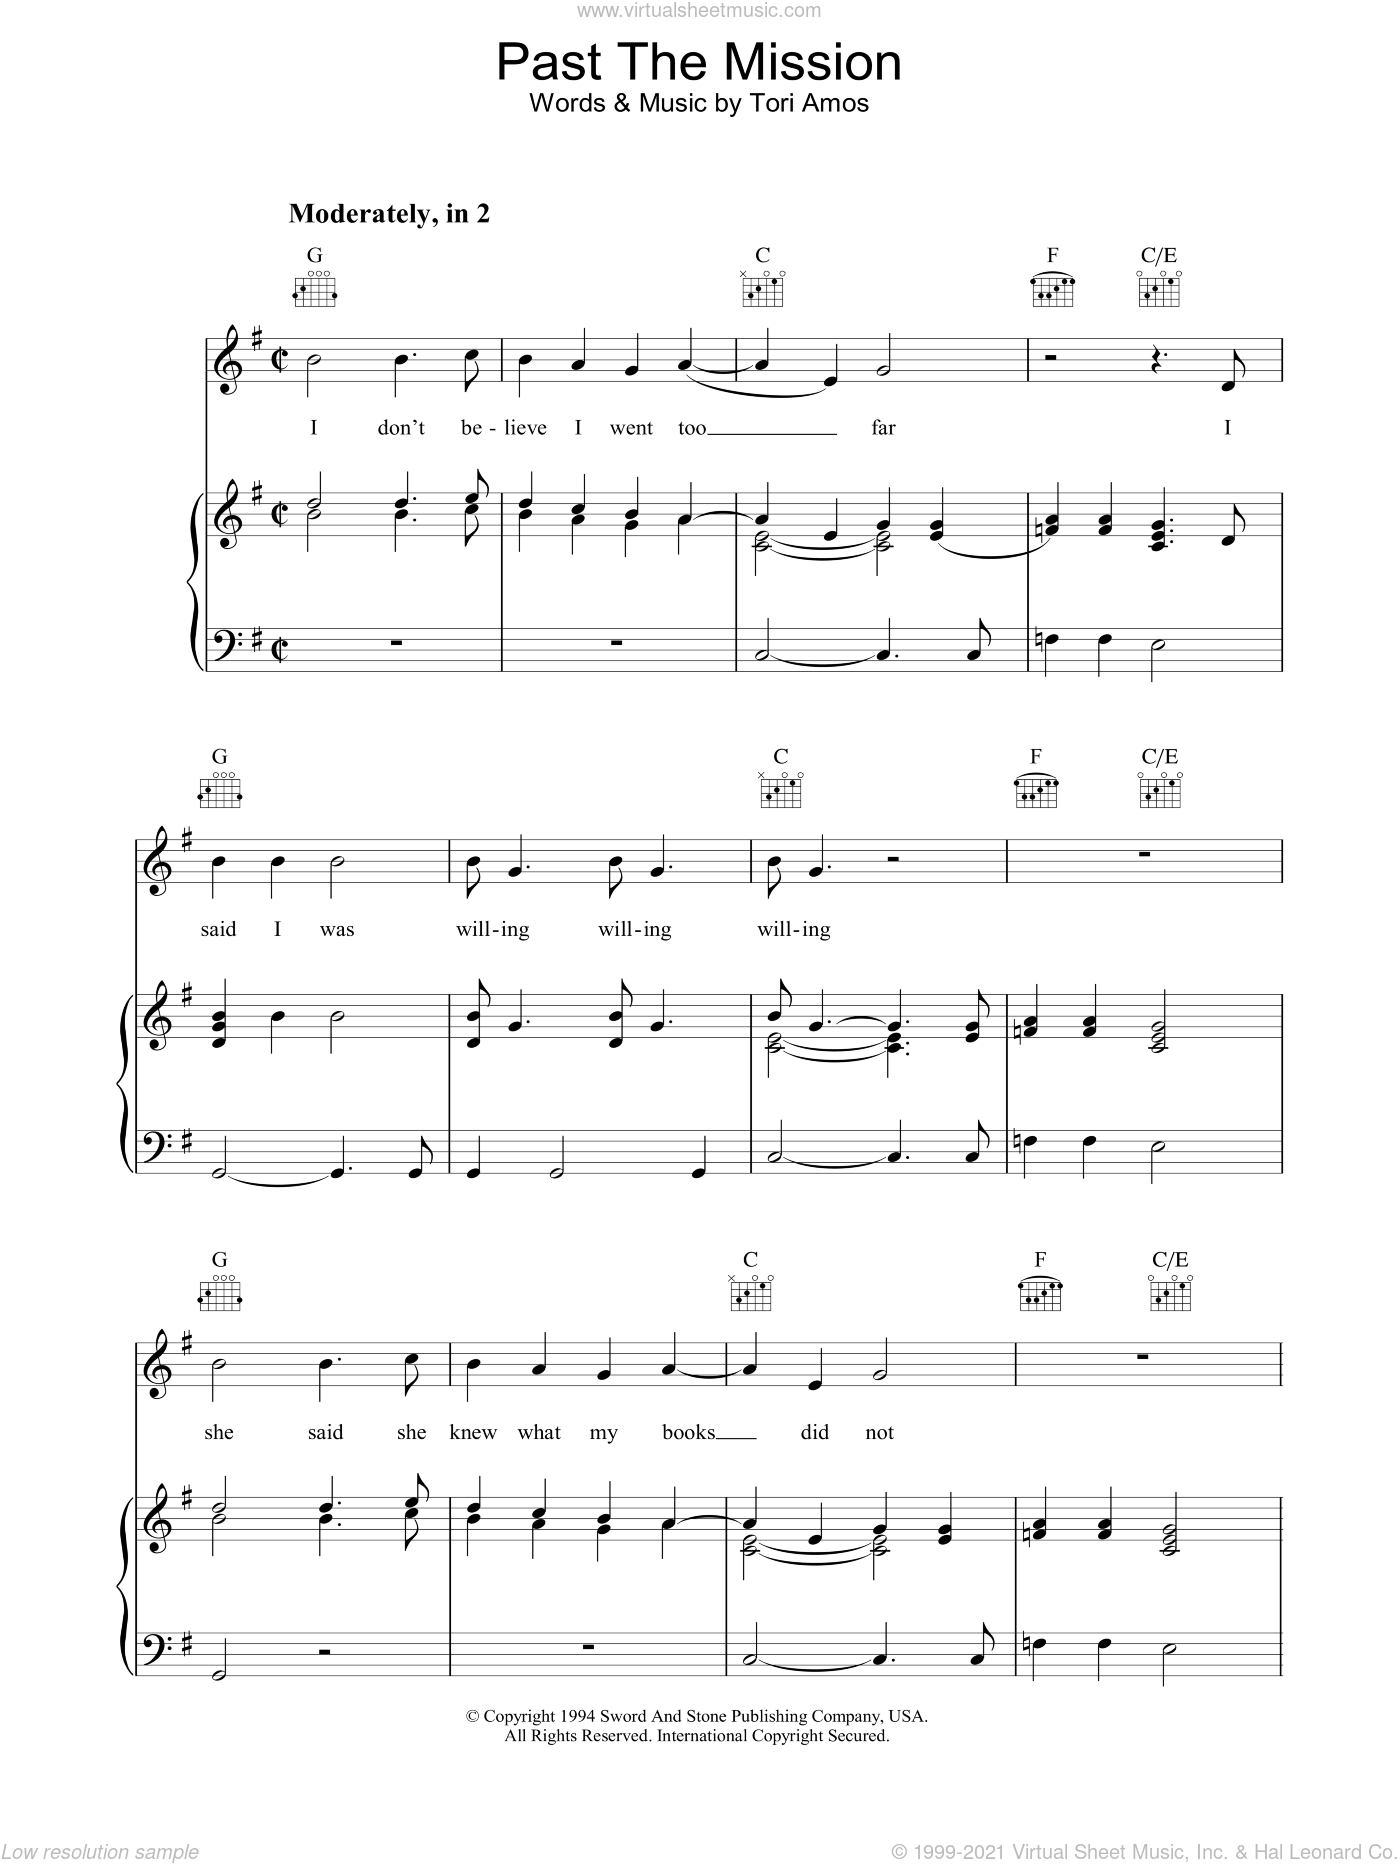 Past The Mission sheet music for voice, piano or guitar by Tori Amos, intermediate skill level